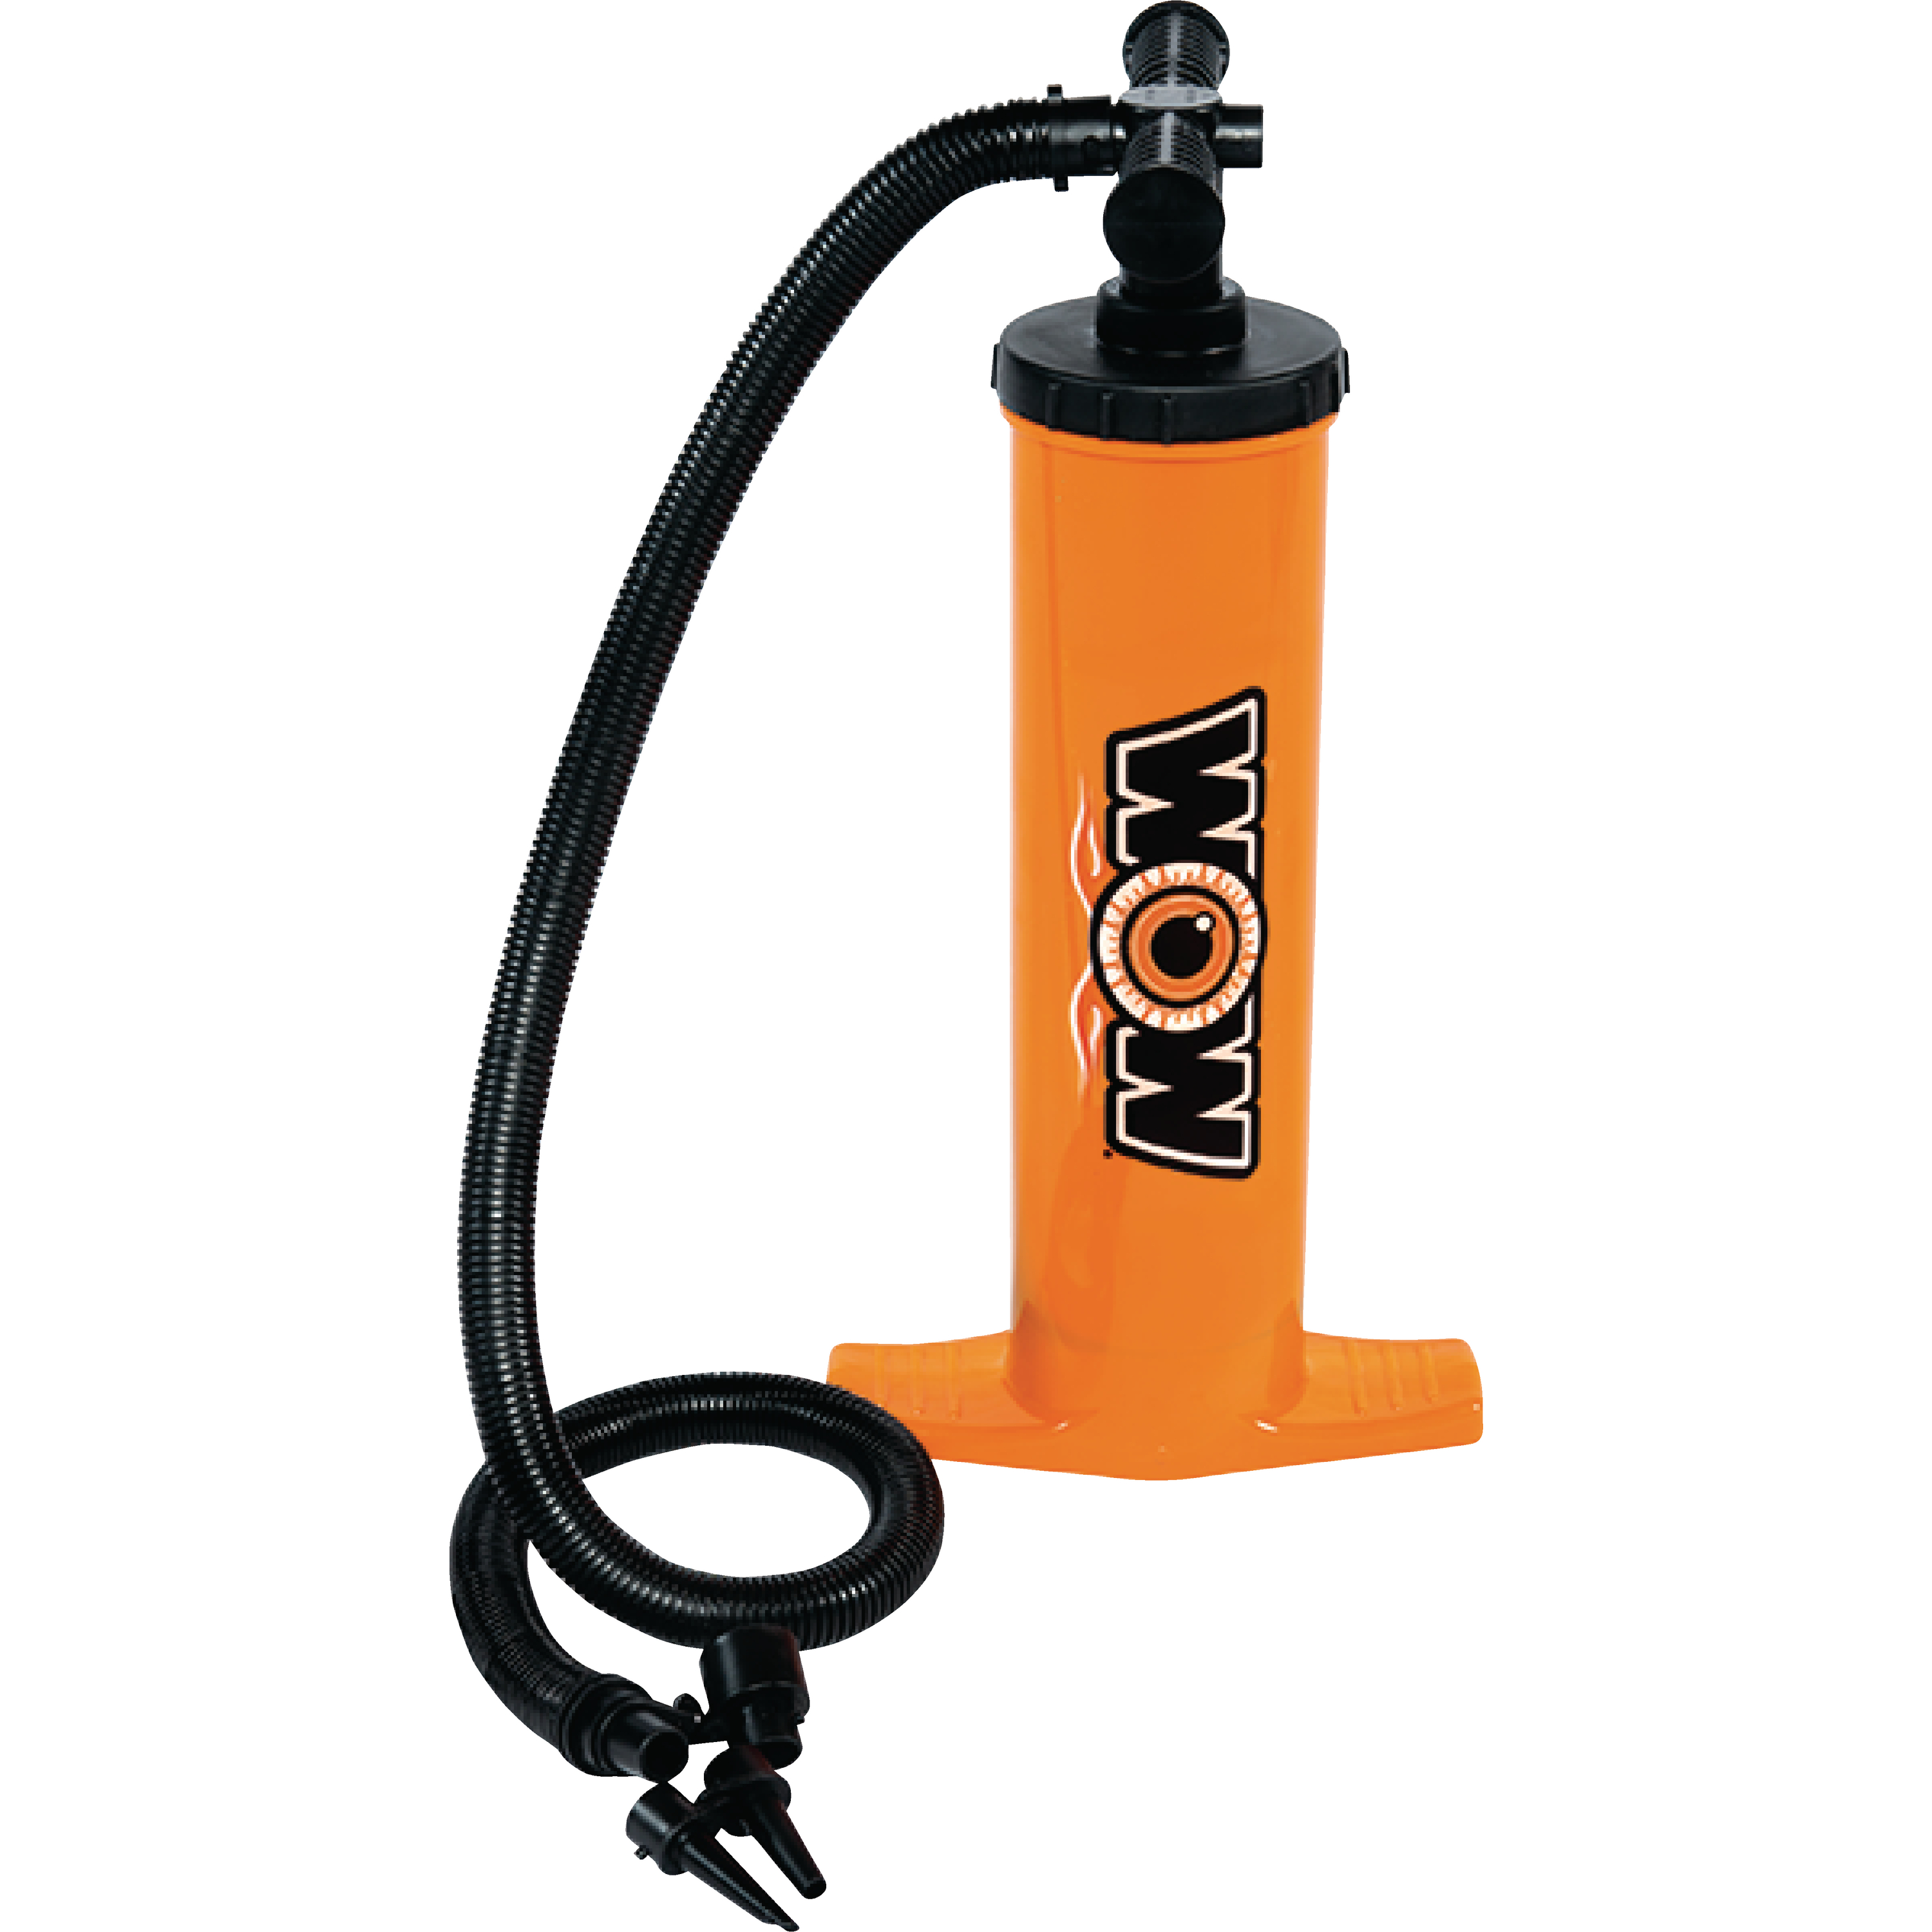 WOW 13-4030 Double Action Hand Pump